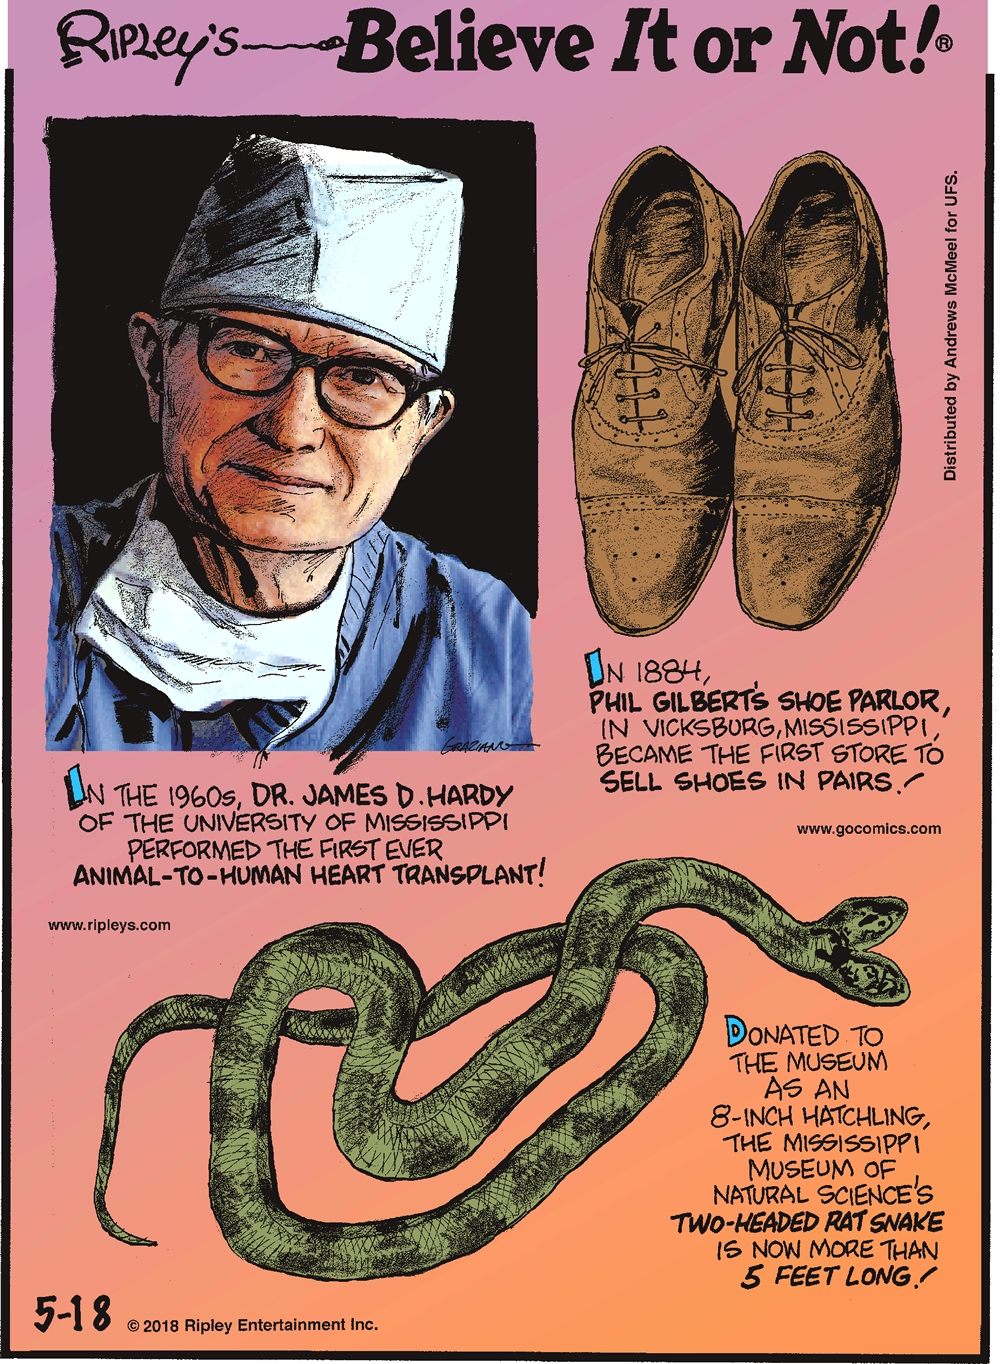 In the 1960s, Dr. James D. Hardy of the University of Mississippi performed the first ever animal-to-human heart transplant!-------------------- In 1884, Phil Gilbert's Shoe Parlor, in Vicksburg, Mississippi became the first store to sell shoes in pairs!-------------------- Donated to the museum as an 8-inch hatchling, the Mississippi Museum of Natural Science's two-headed rat snake is now more than 5 feet long!